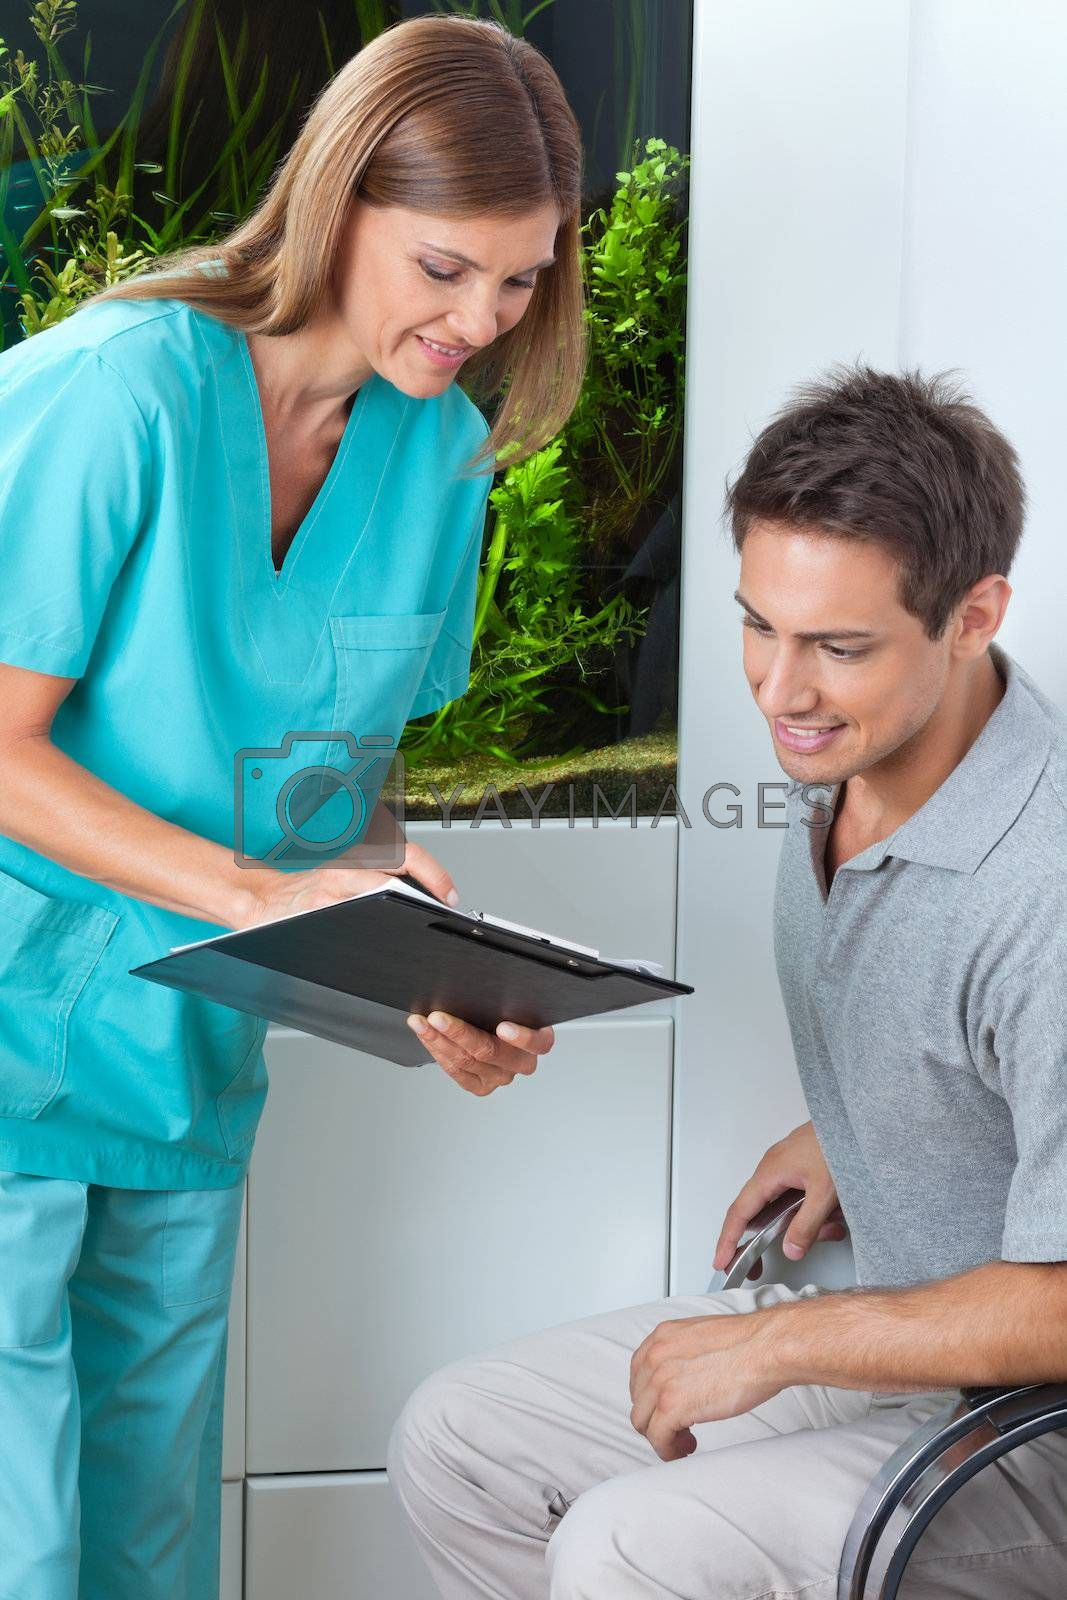 Female dentist taking an appointment of male patient on clipboard at clinic